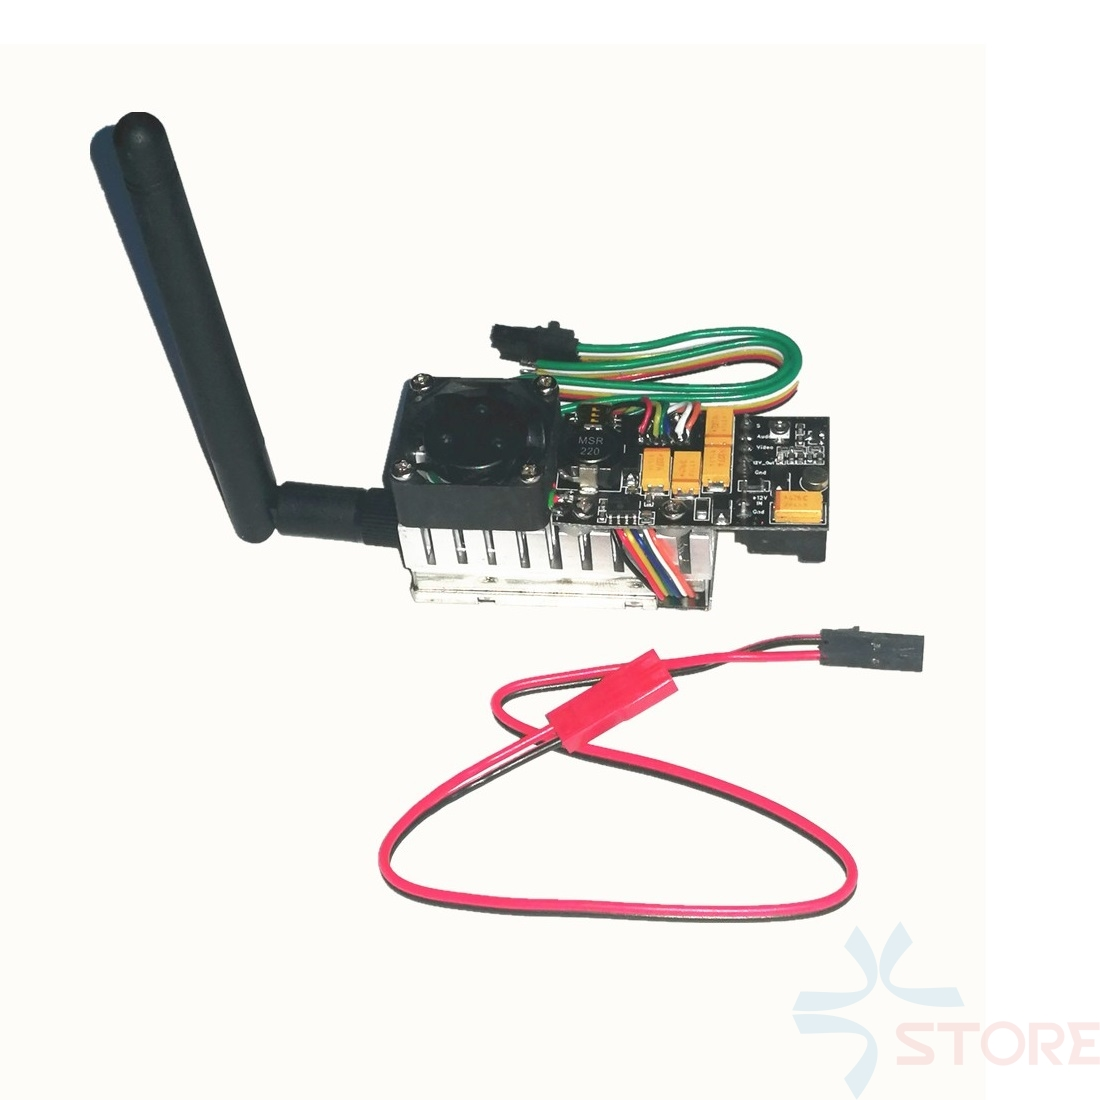 Over 2Km Range 5.8Ghz 2W FPV Wireless Transmitter TS582000 5.8G 2000MW 8CH Video AV Audio Sender new passport holderstransparent silicone waterproof dirt cover size 9x13 1cm id cards business card credit card bank holders